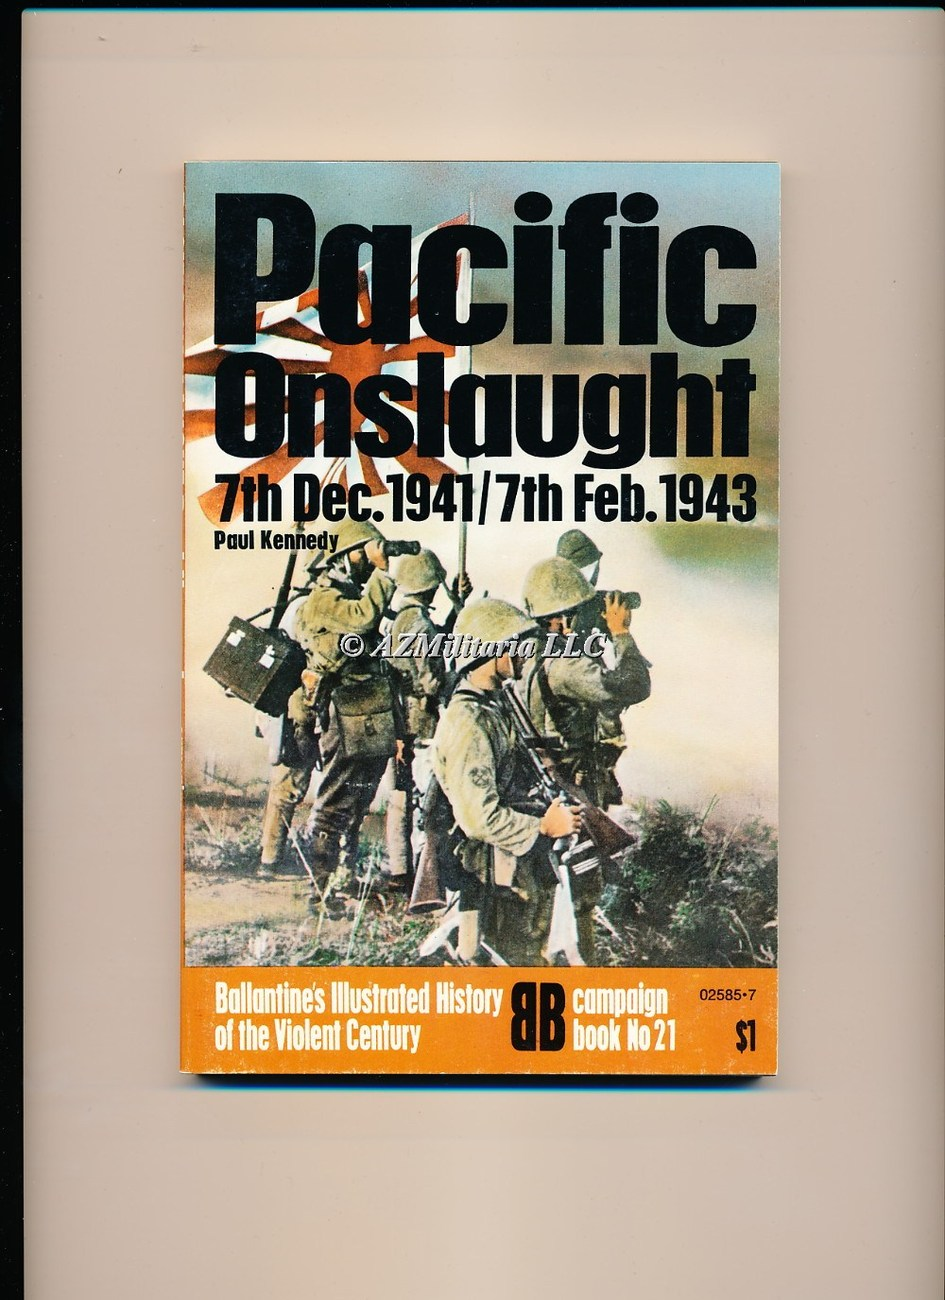 Pacific Onslaught: 7th Dec. 1941/ 7th Feb. 1943 (Campaign Book, No 21)